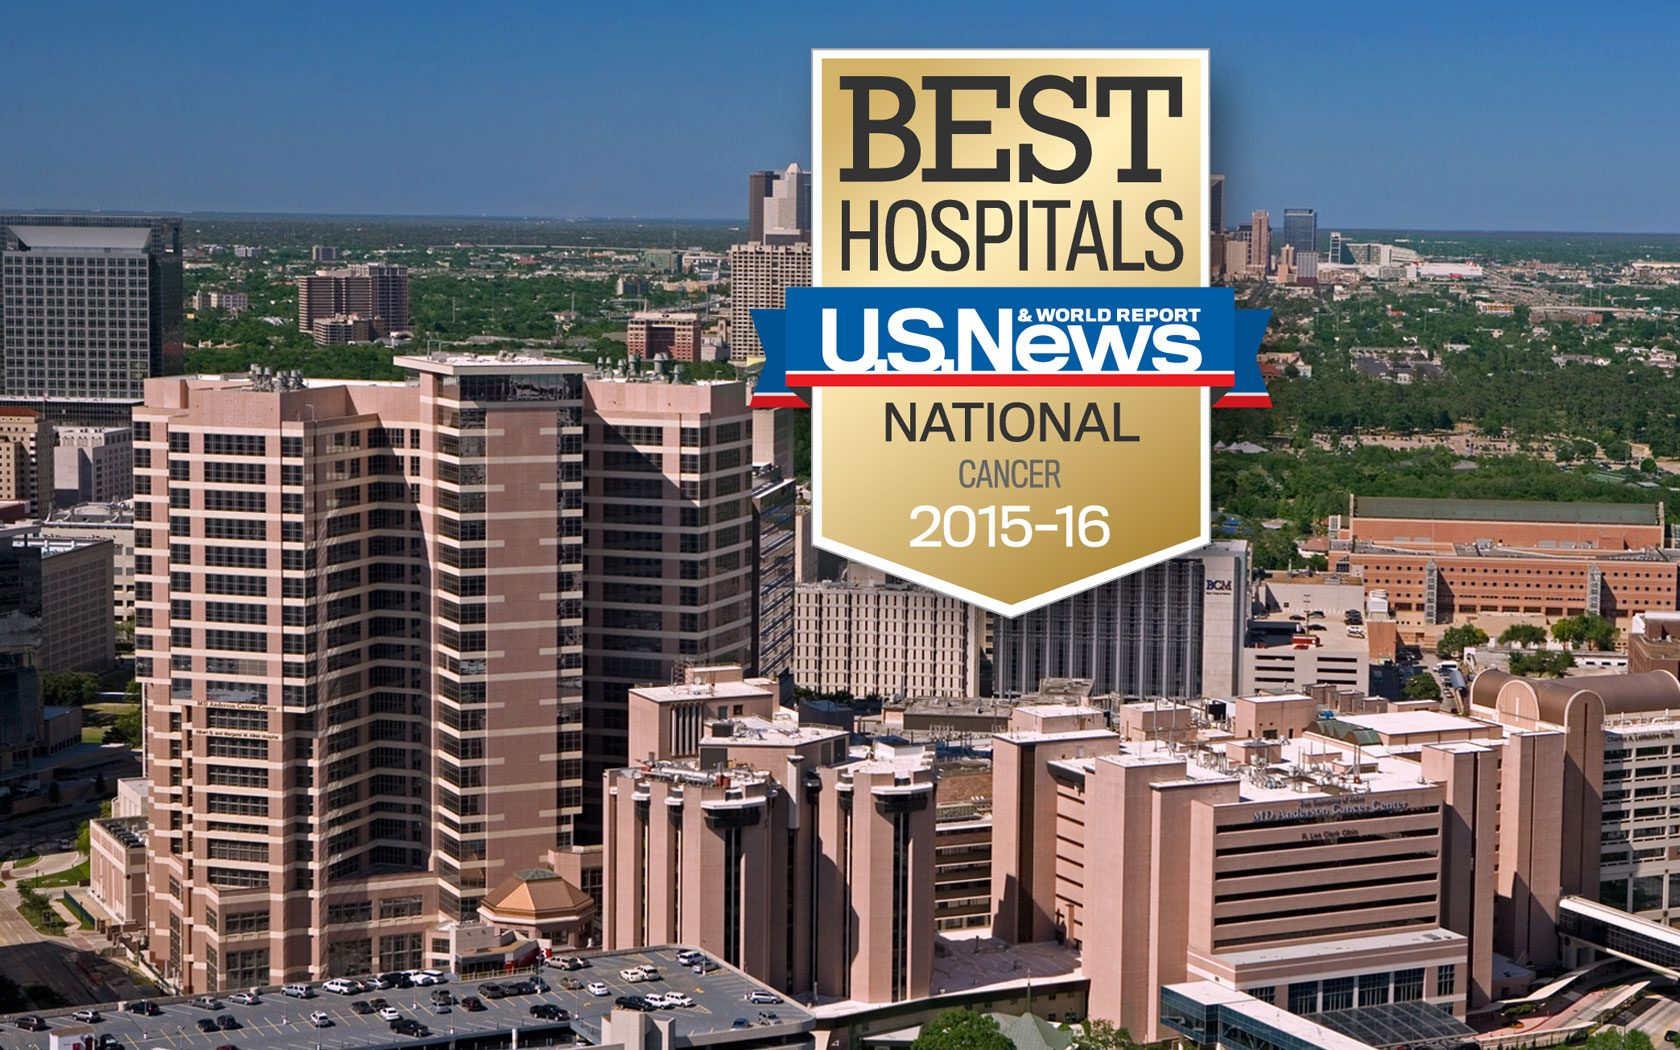 MD Anderson named the top cancer hospital | MD Anderson Cancer Center